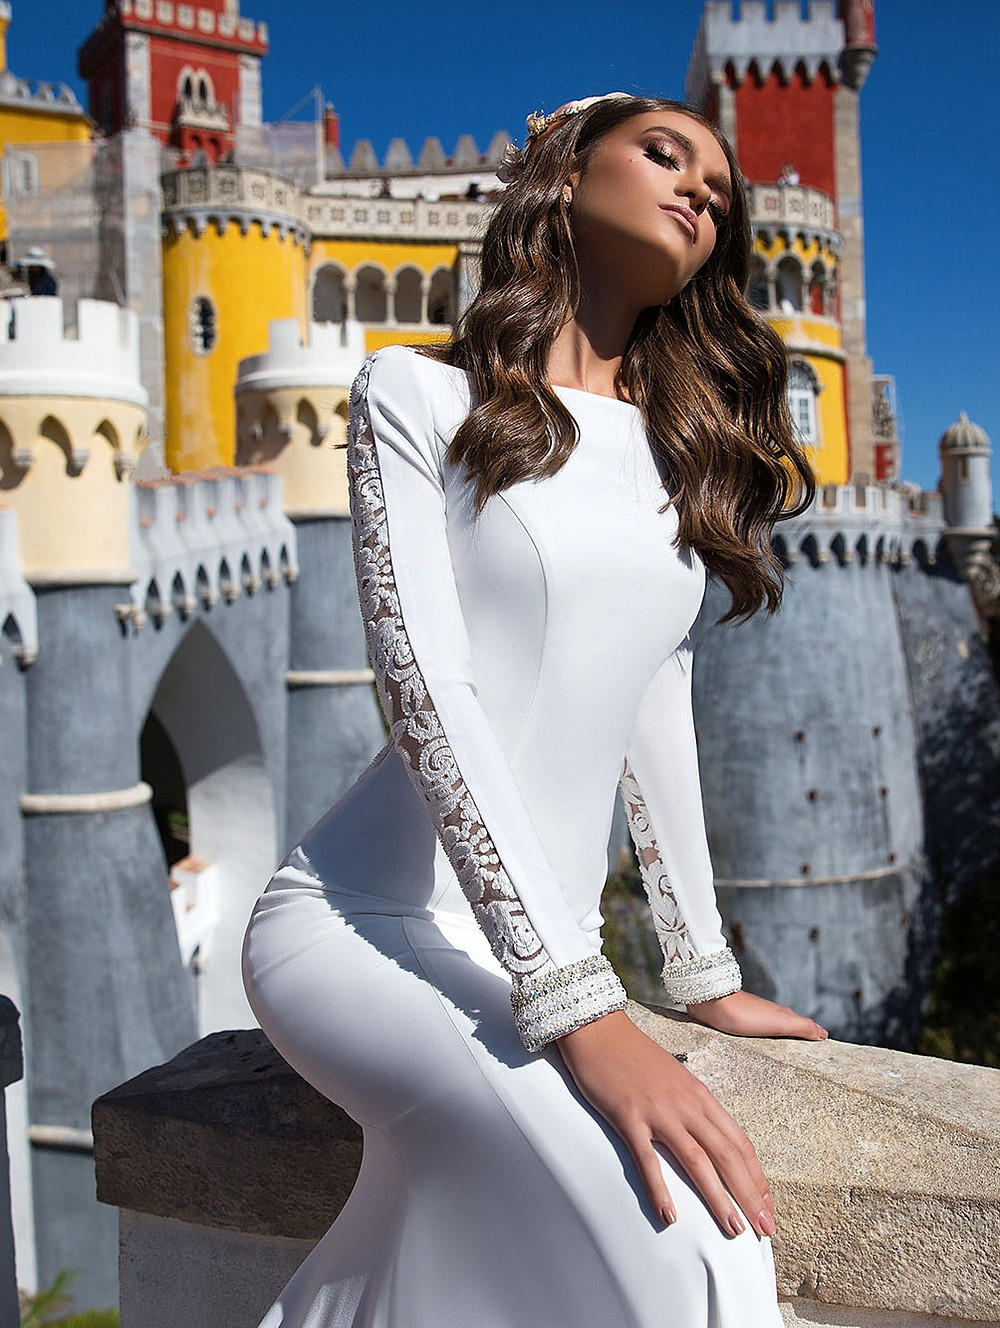 A Milla Nova simple mermaid wedding dress with long sleeves and lace inserts